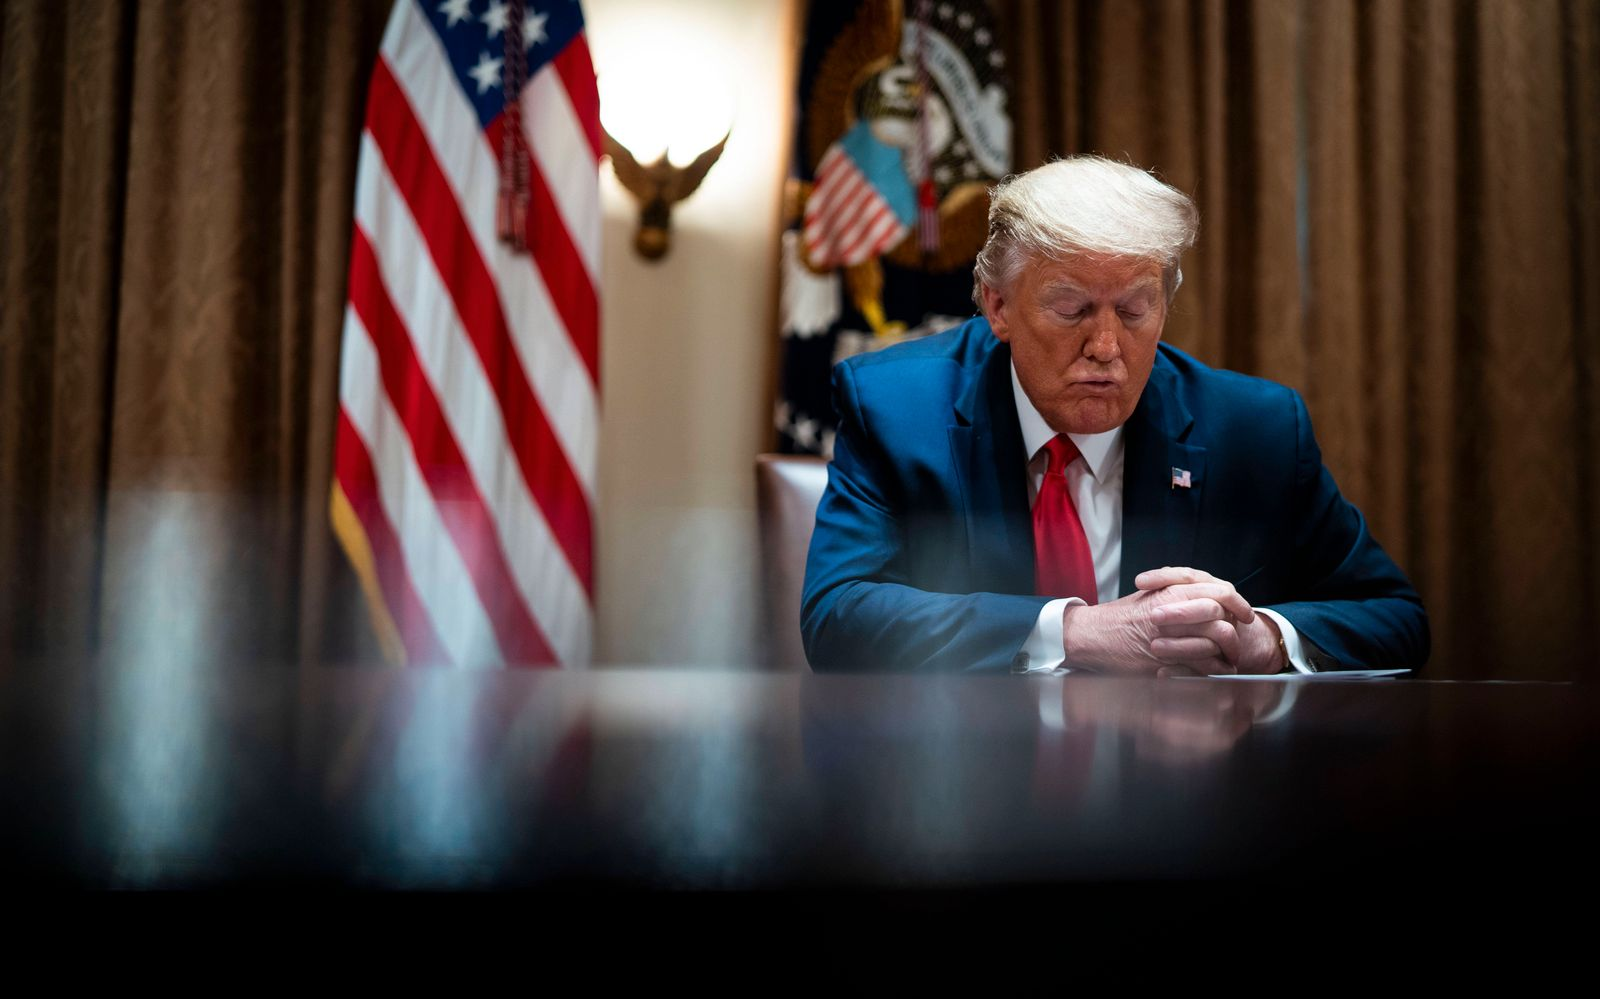 United States President Donald J. Trump makes remarks during a meeting with Healthcare Executives in the Cabinet Room of